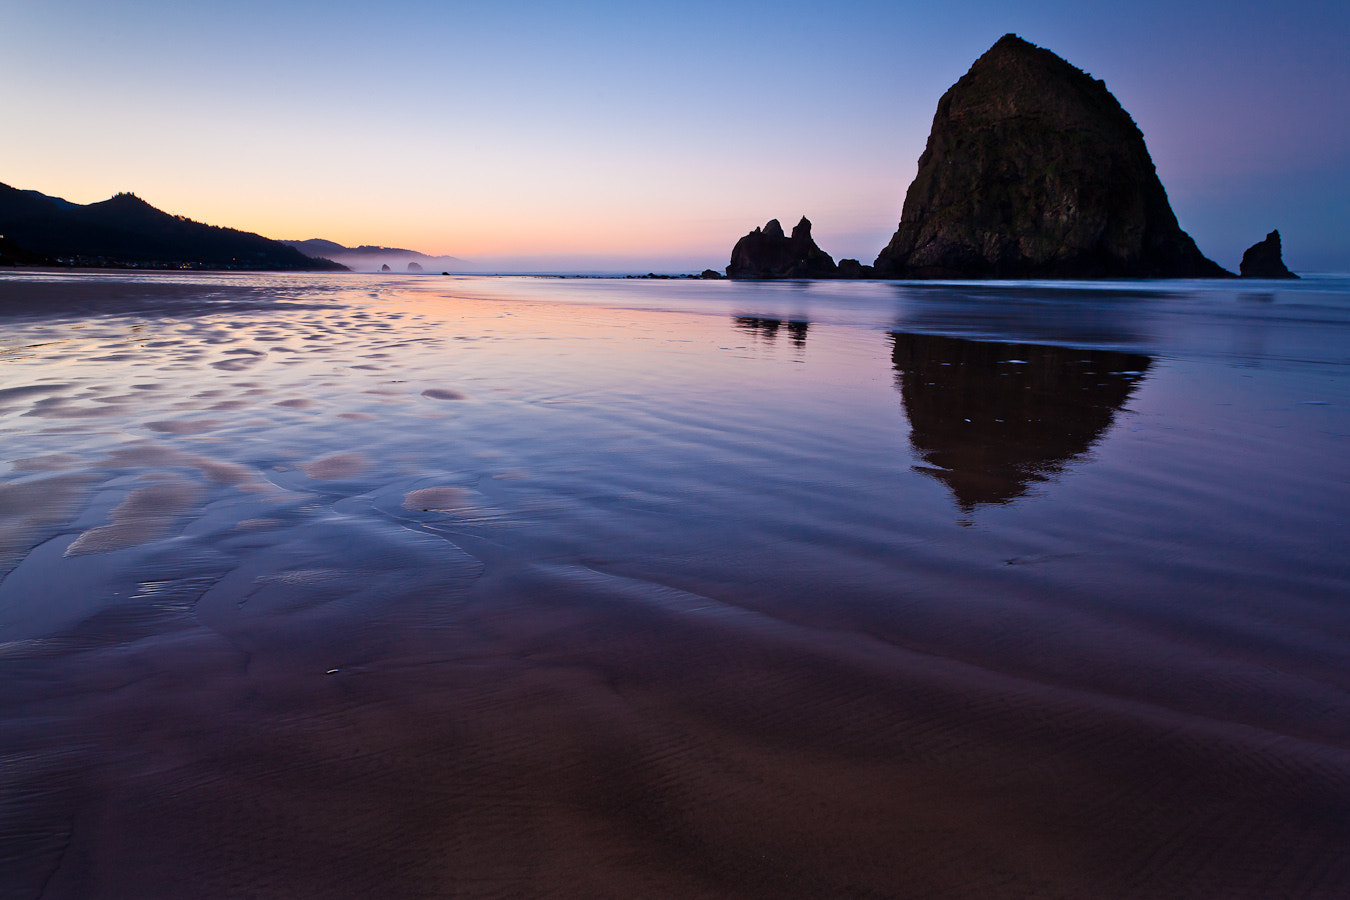 Photograph Morning Sand by Brian Pemberton on 500px